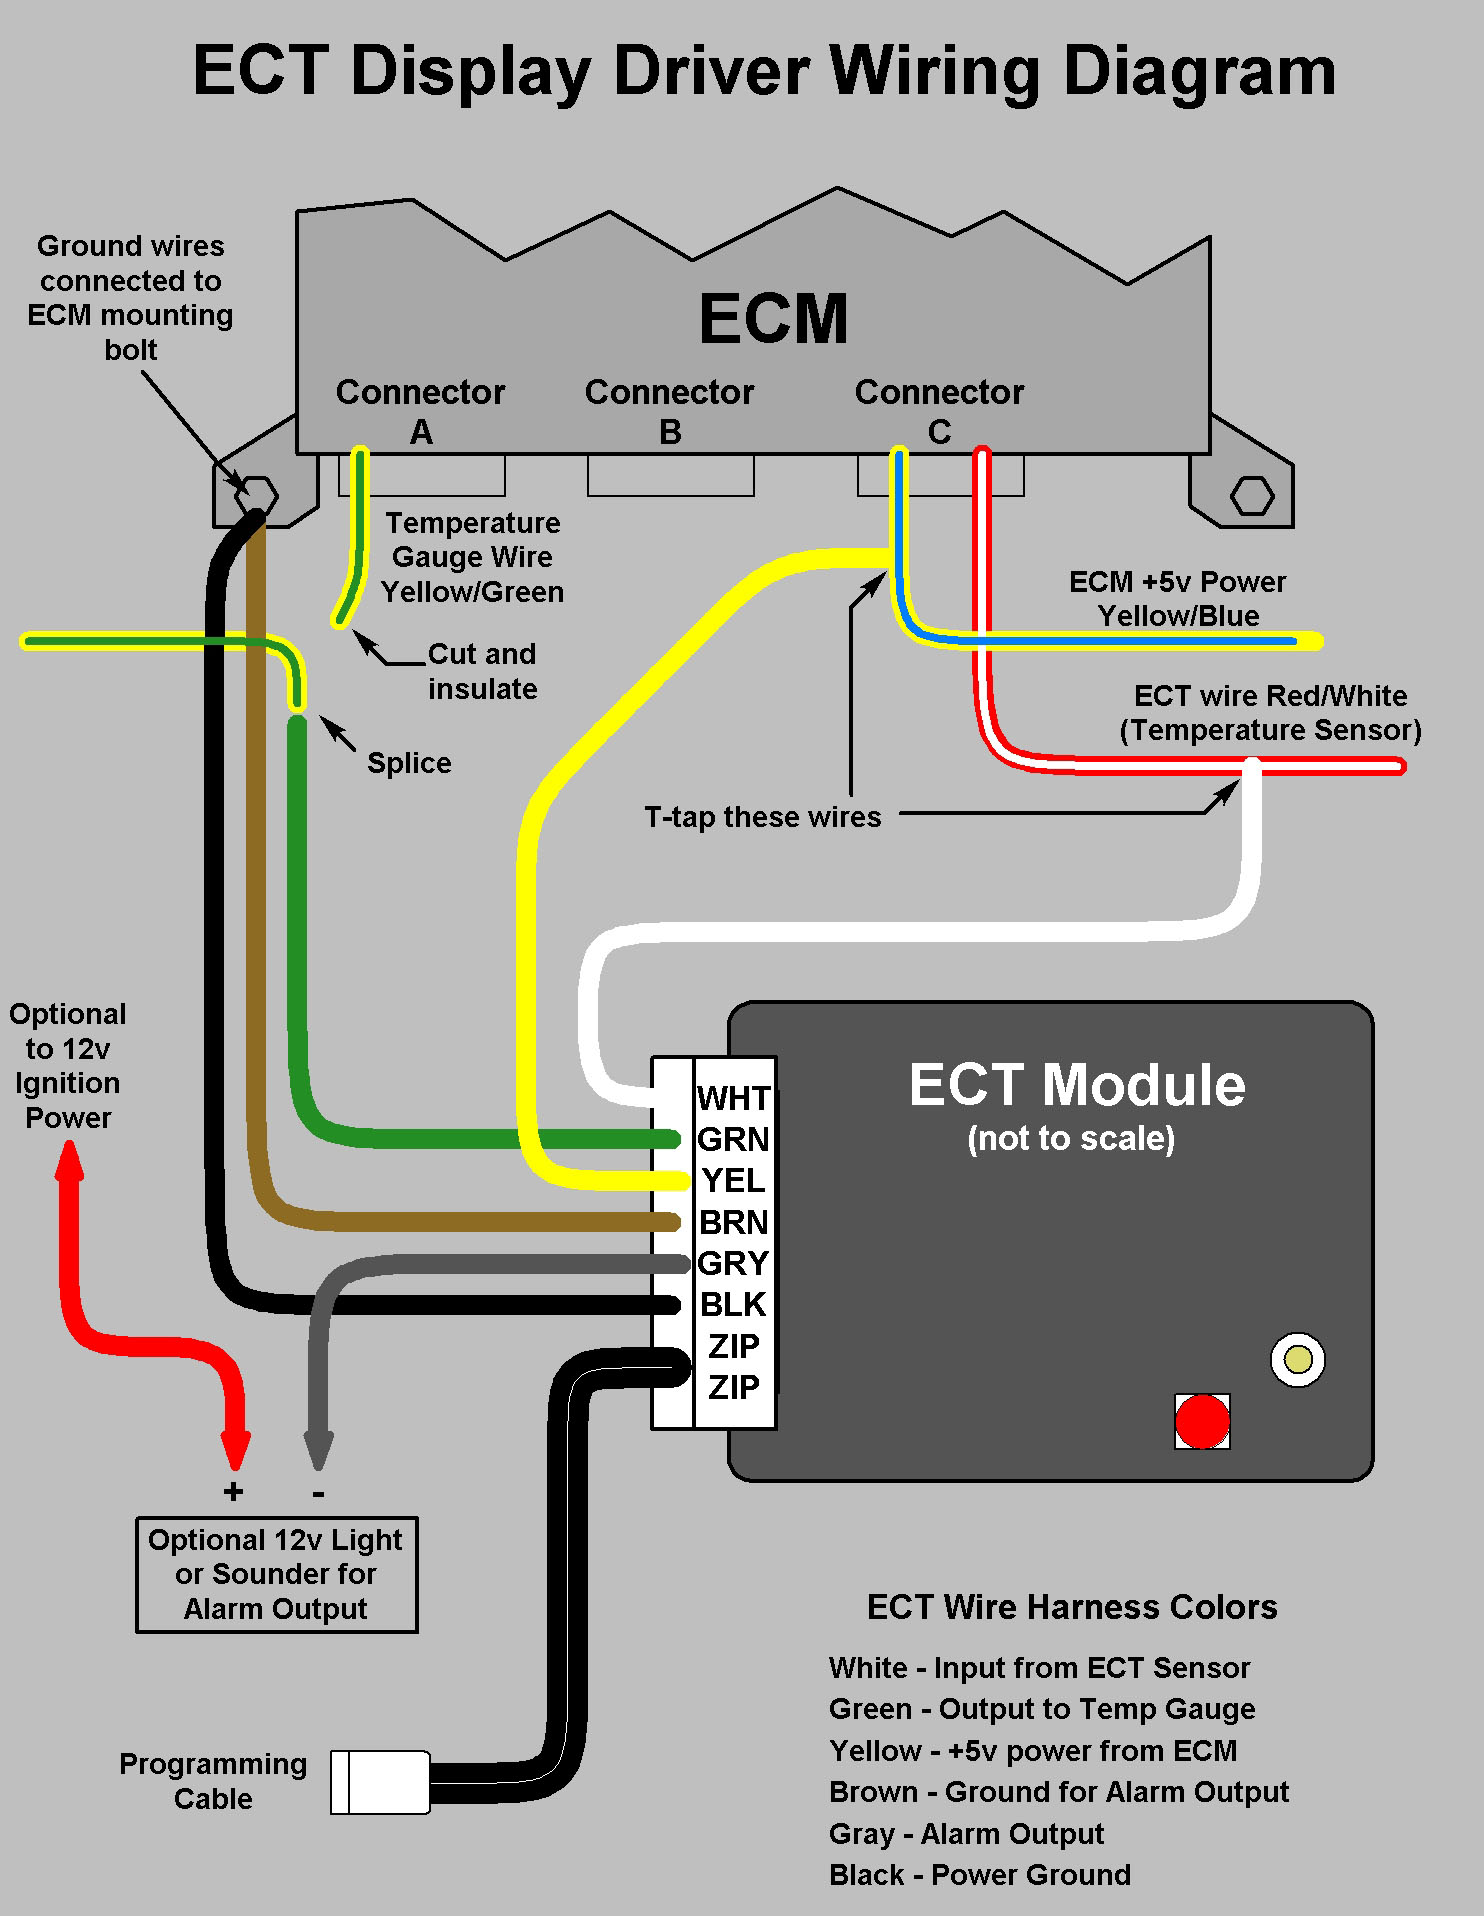 ECT wiring diagram ems wiring diagram management system \u2022 wiring diagrams j squared co aem ems 4 wiring diagram at nearapp.co